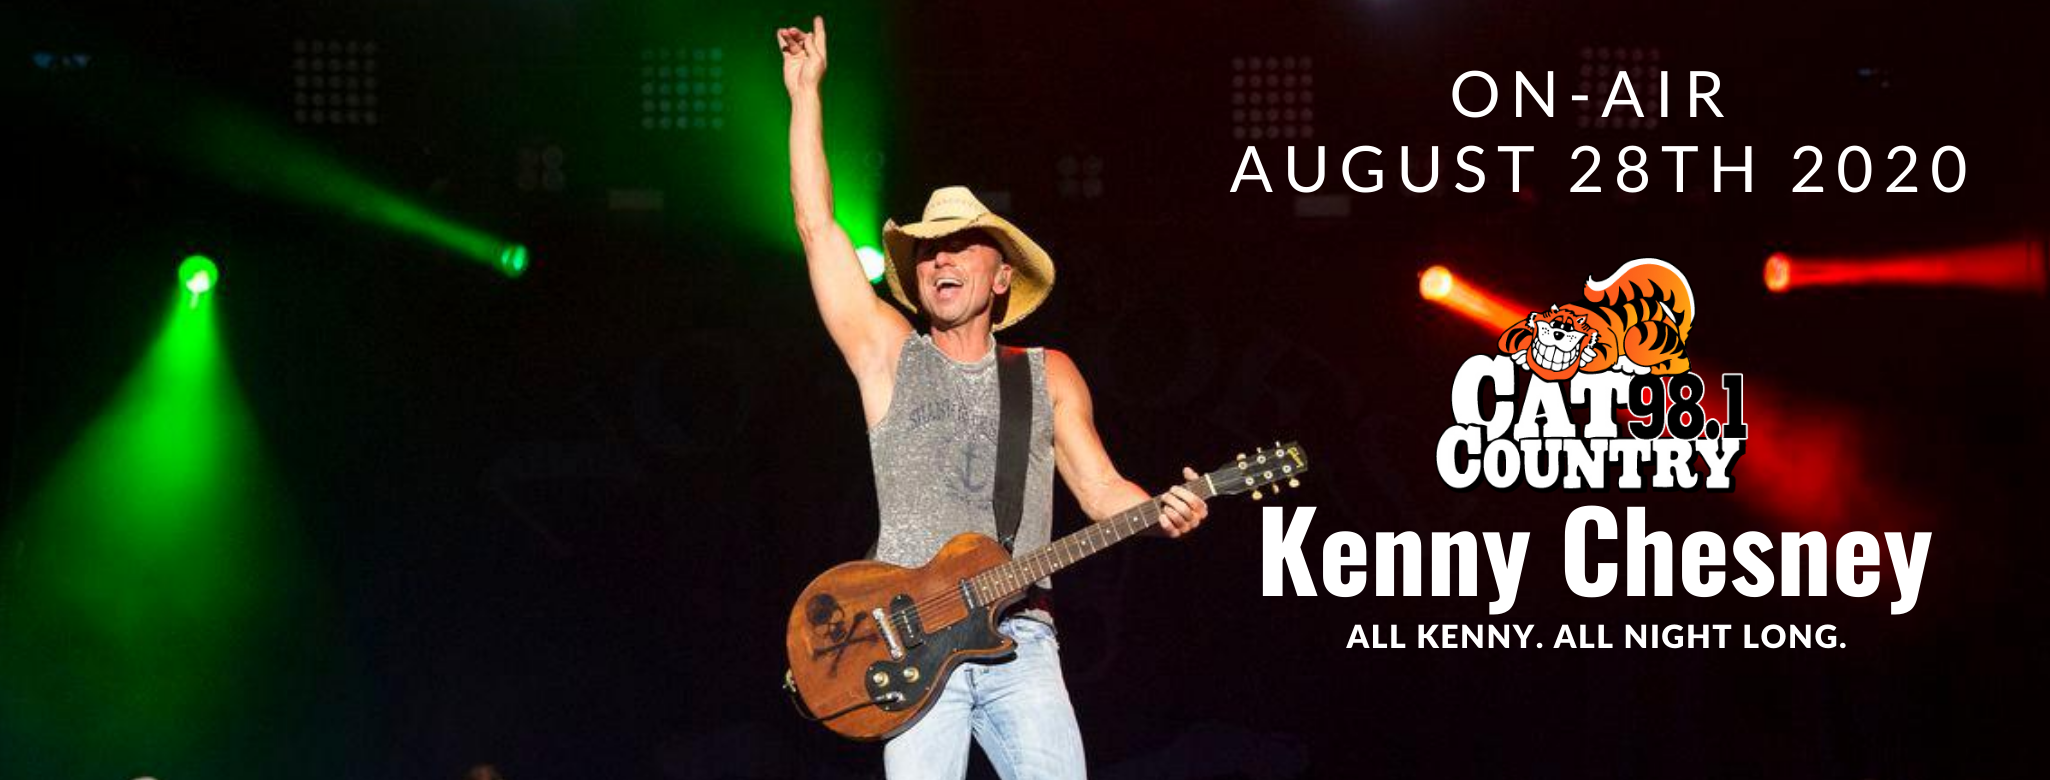 Kenny Chesney's Virtual Concert on Cat Country 98.1